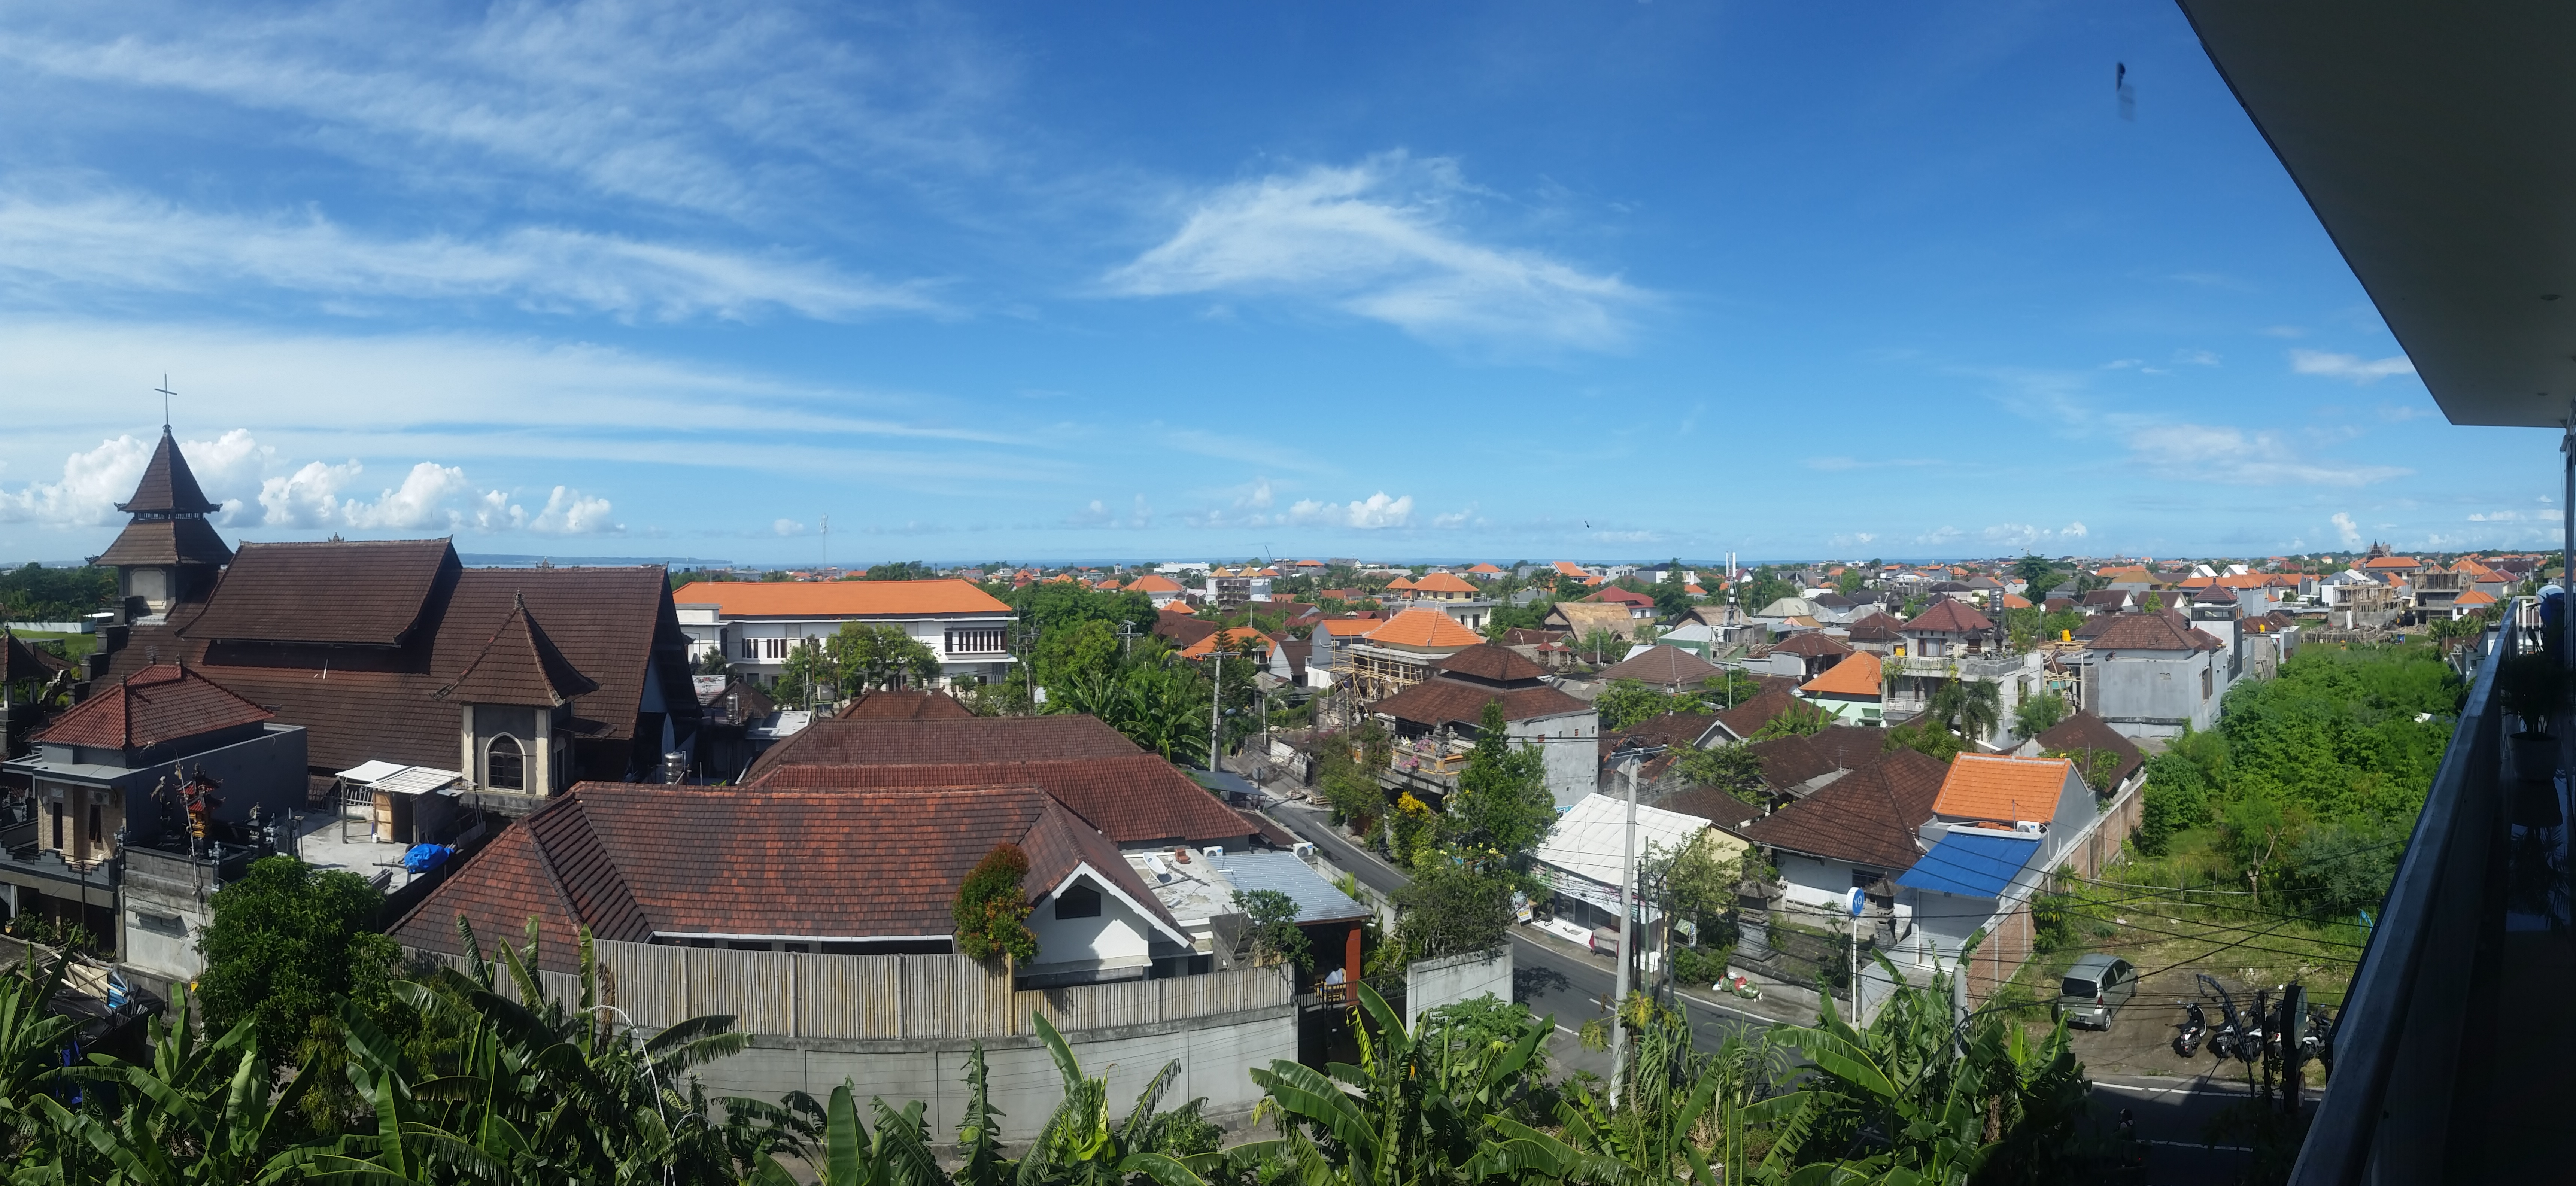 View from Matra's south window on to residences in Canggu. In the distance you can see a sliver of ocean and also some parts of Bali Selatan like Jimbaran.